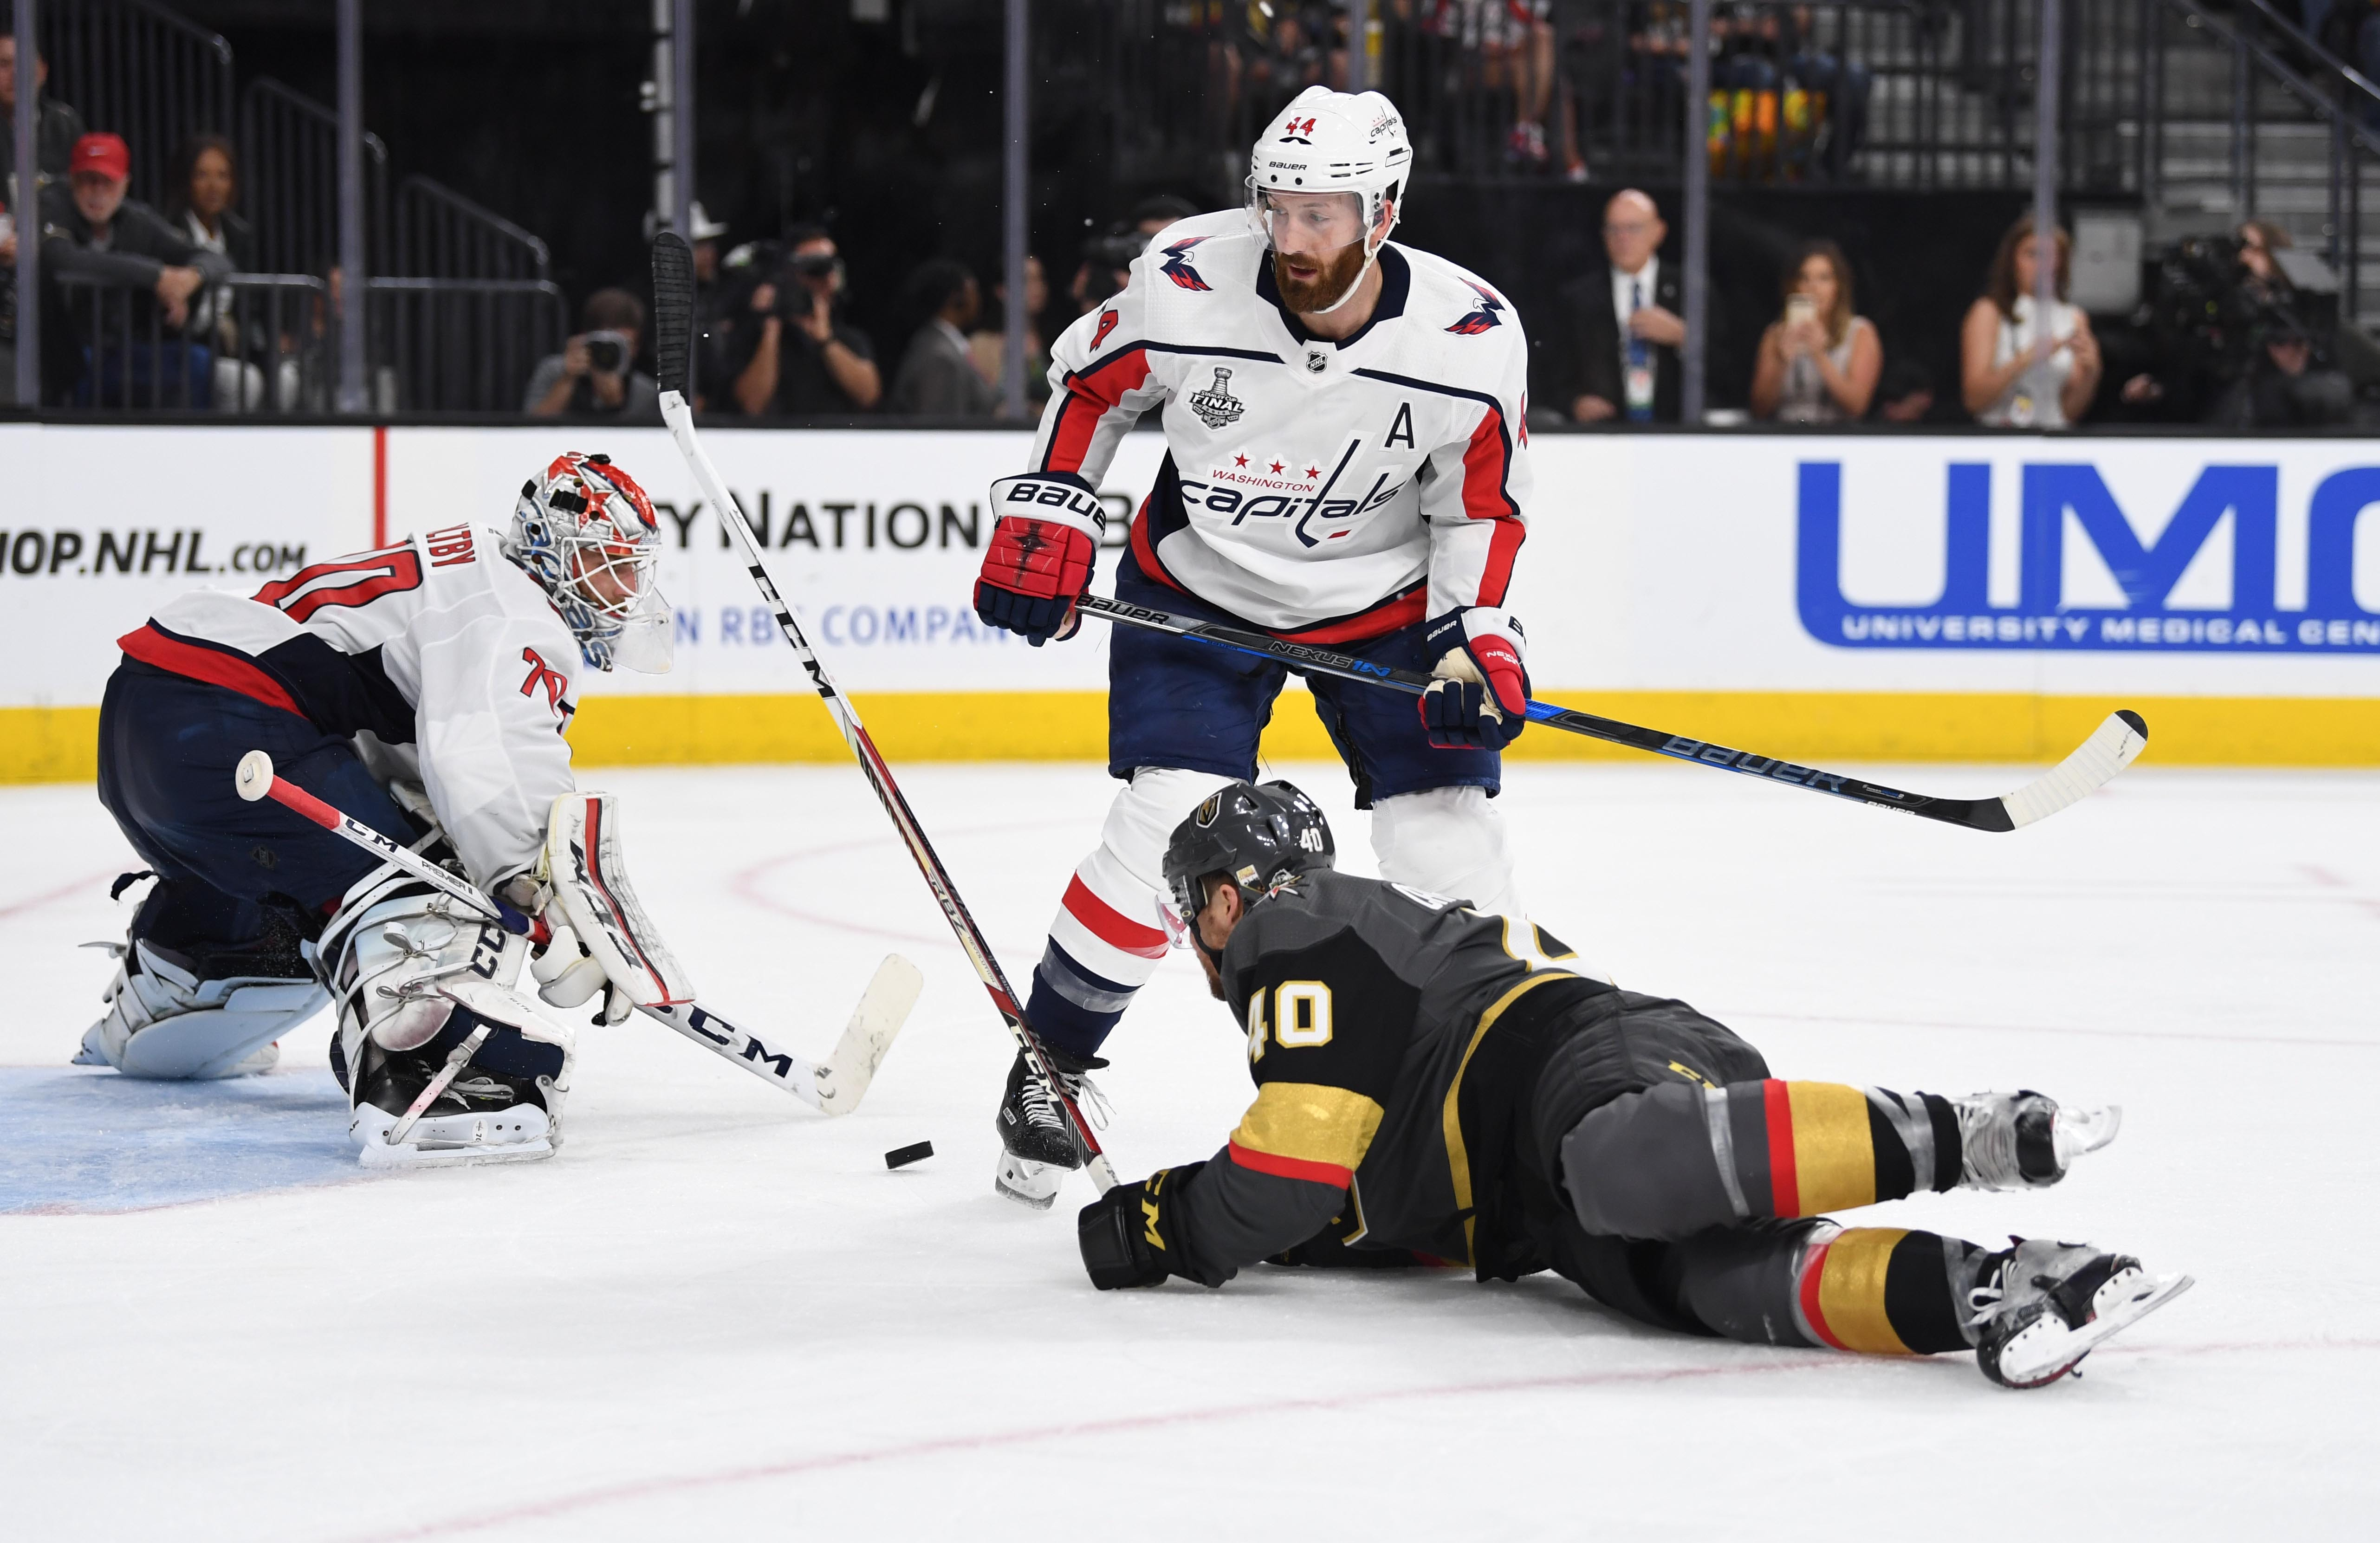 Capitals' Brooks Orpik stunned after huge hit to head, somehow still stays in Stanley Cup Final Game 3